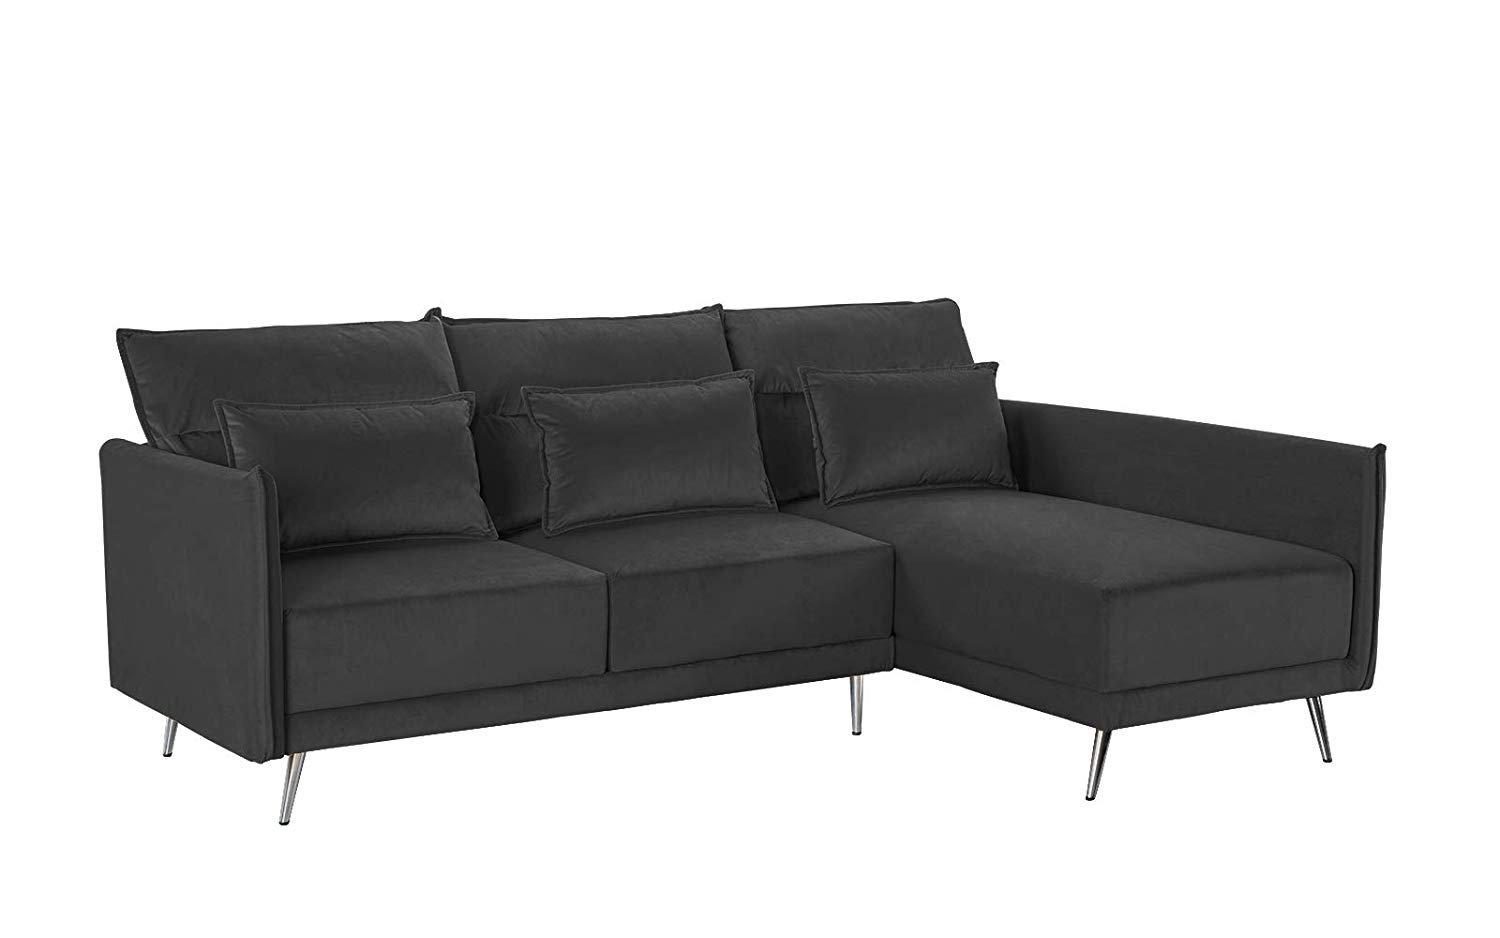 Remarkable Details About Mid Century Velvet Small Living Room Sectional Sofa 88 1 Inch Couch Dark Grey Andrewgaddart Wooden Chair Designs For Living Room Andrewgaddartcom